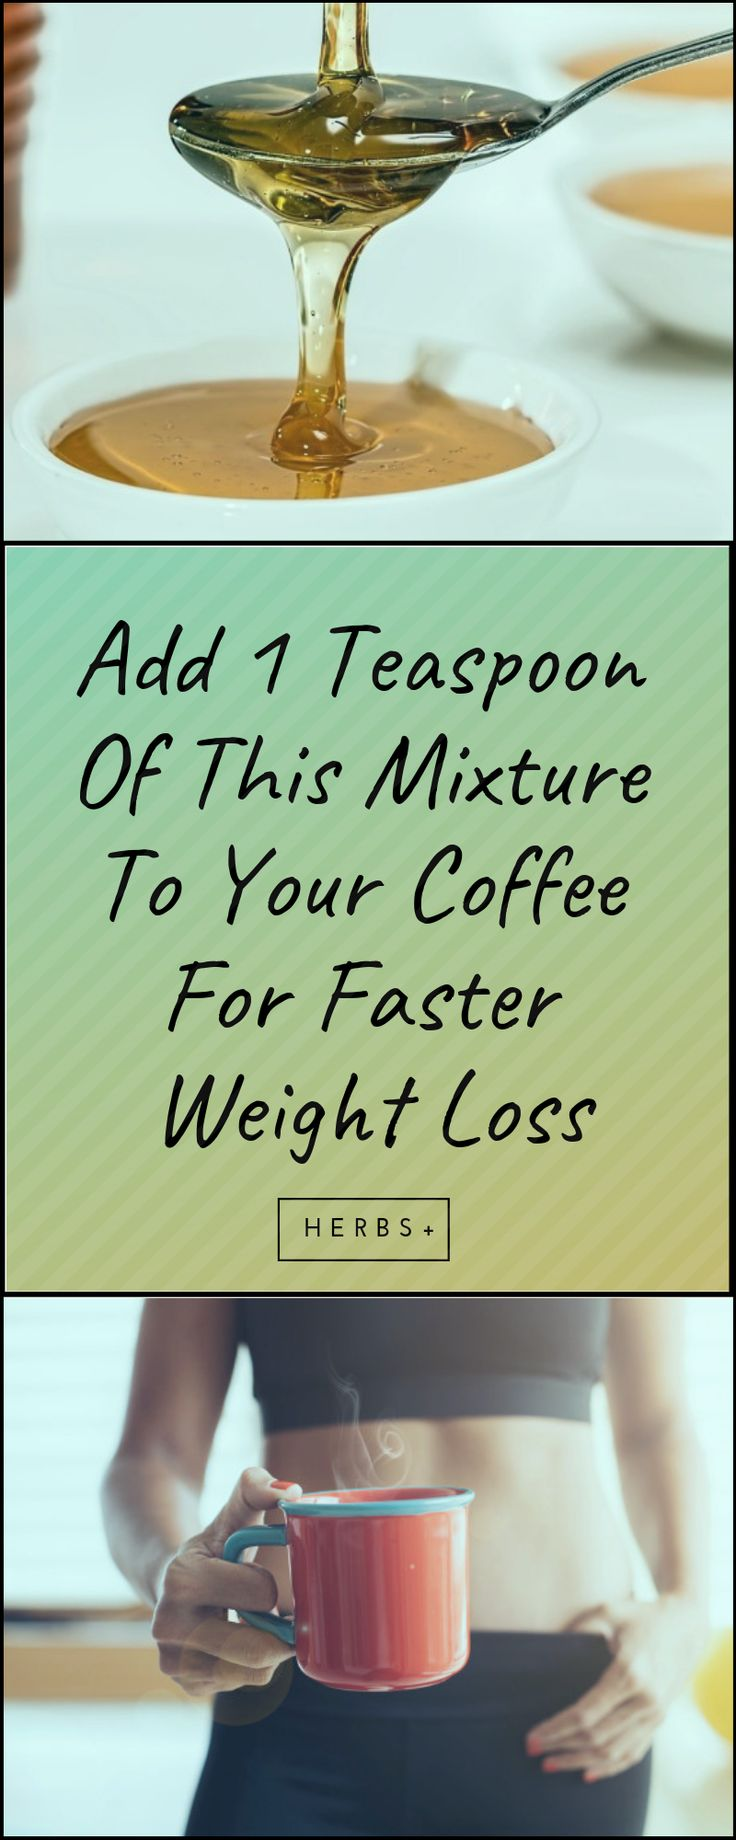 Add 1 Teaspoon Of This Mixture To Your Coffee For Faster Weight Loss